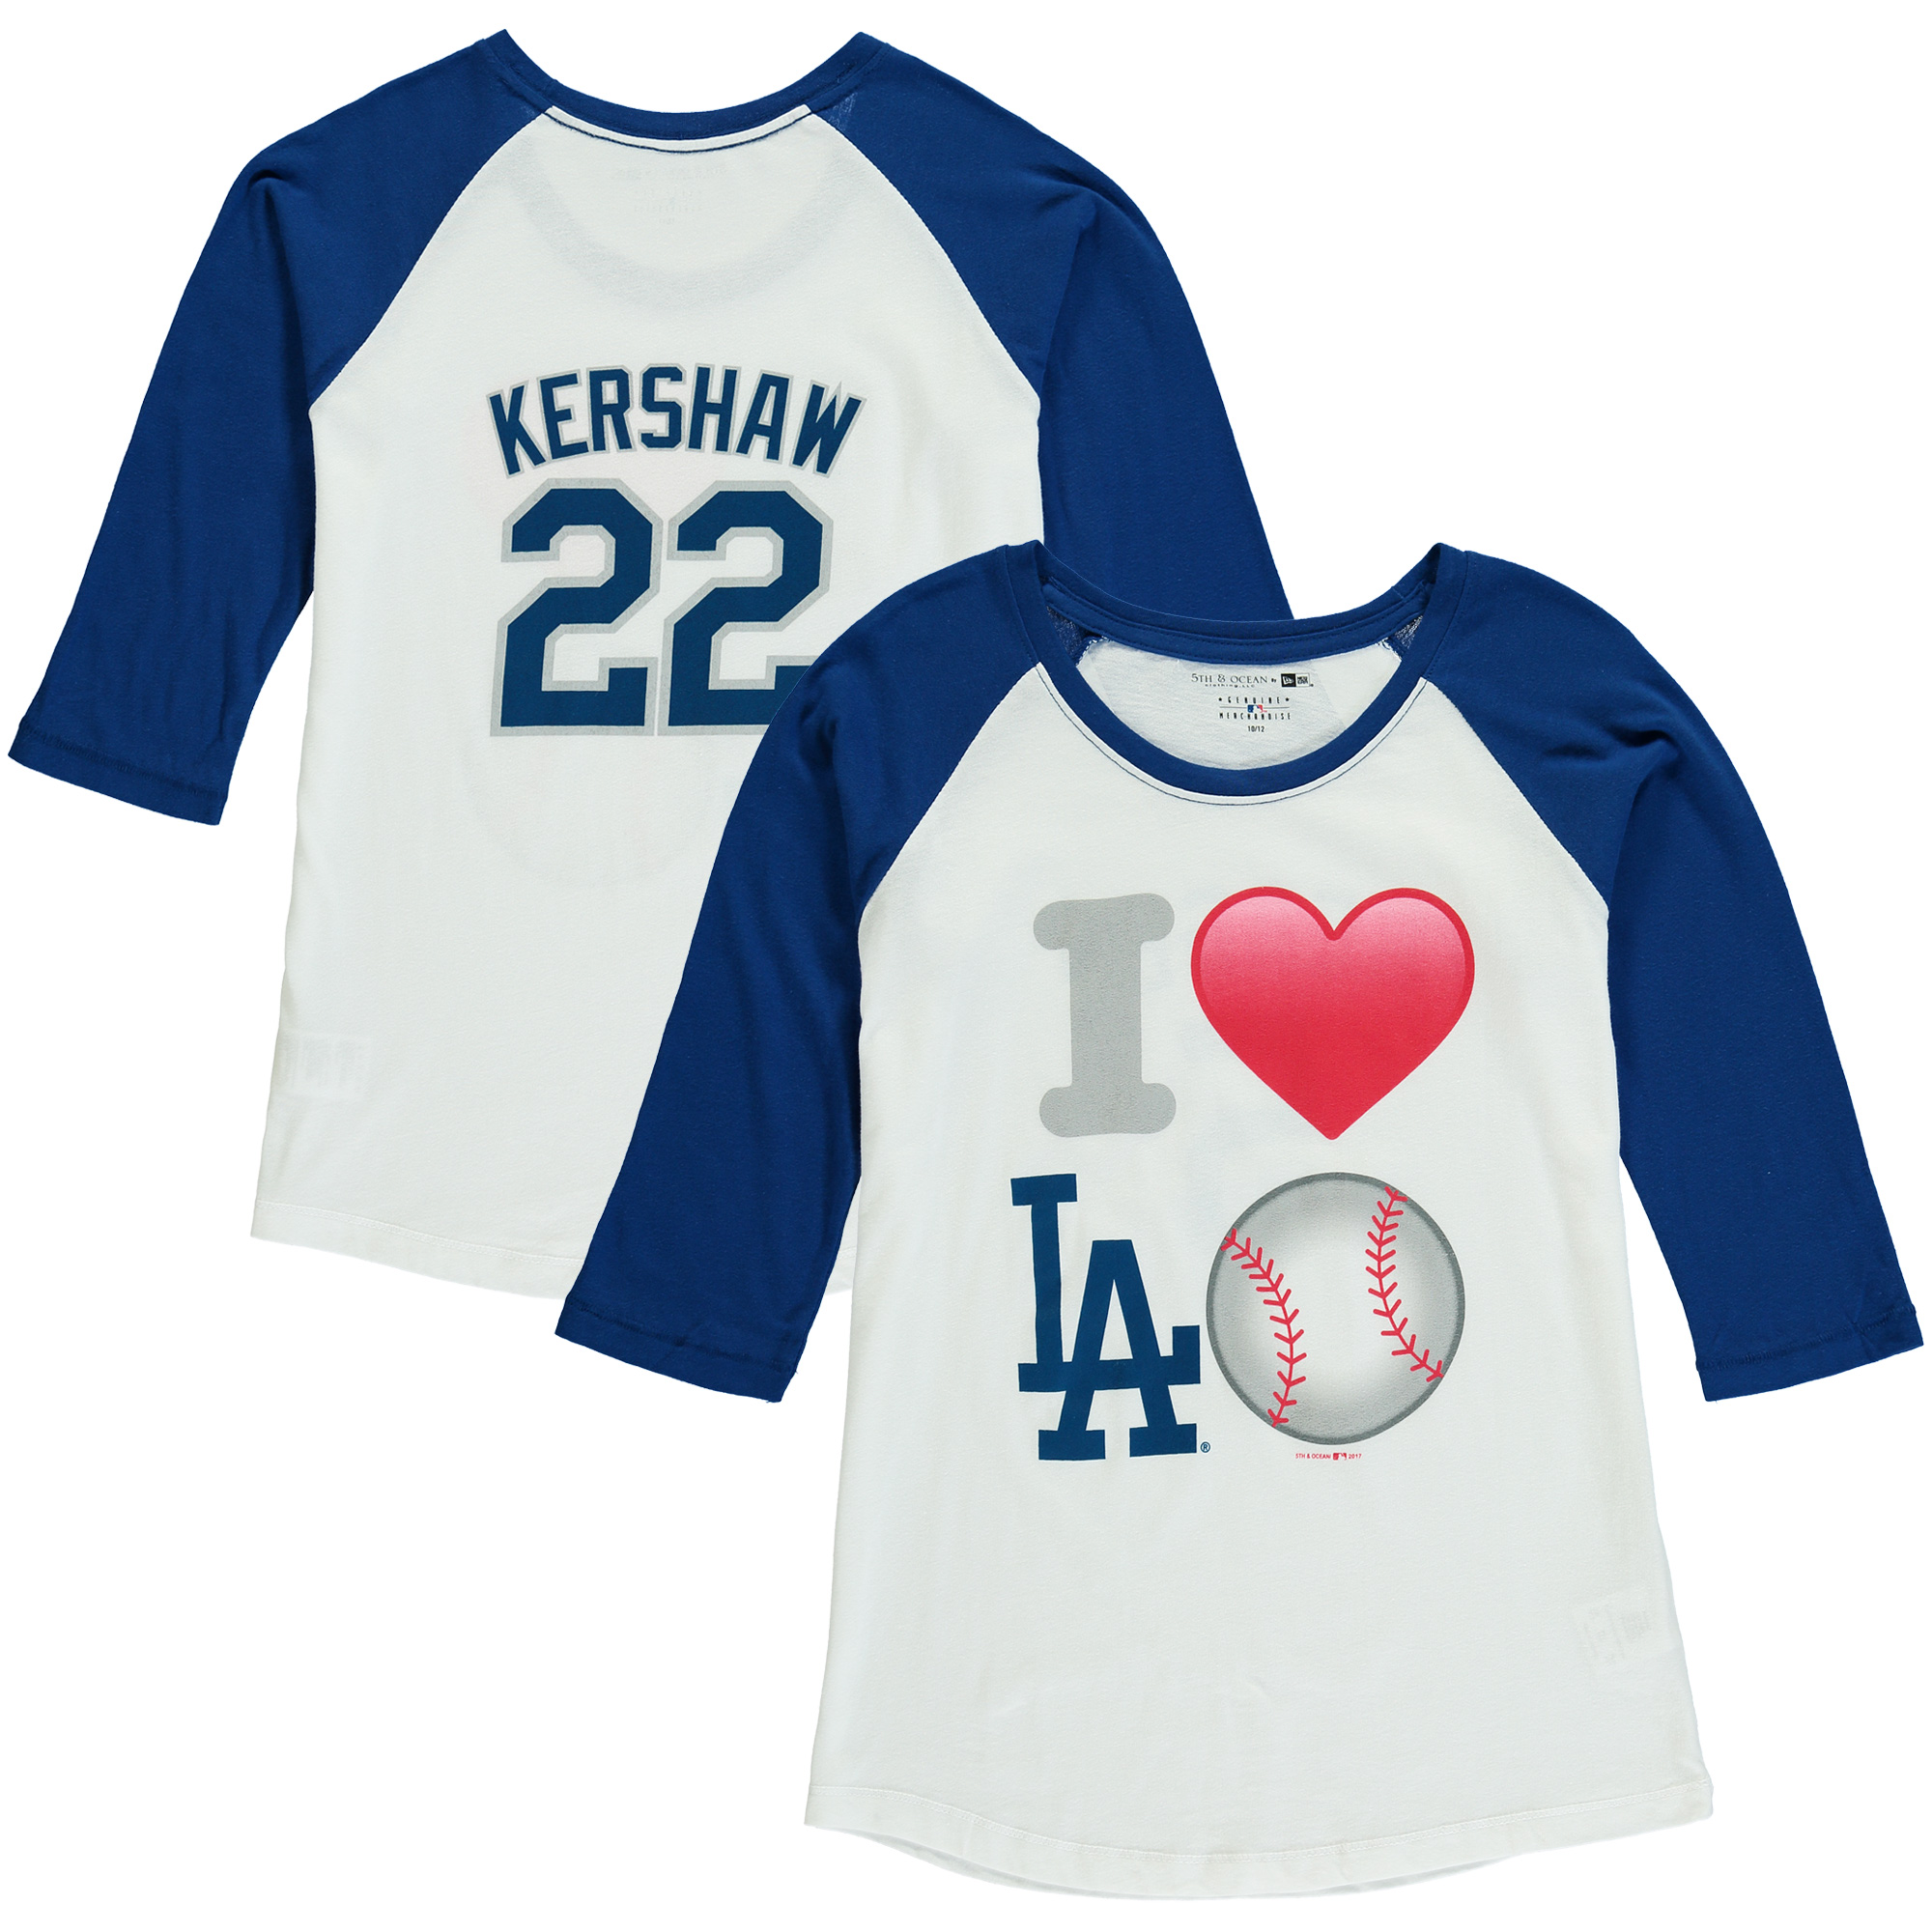 Clayton Kershaw Los Angeles Dodgers 5th & Ocean by New Era Girls Youth Emoji Love Player Name & Number 3/4-Sleeve Raglan T-Shirt - White/Royal